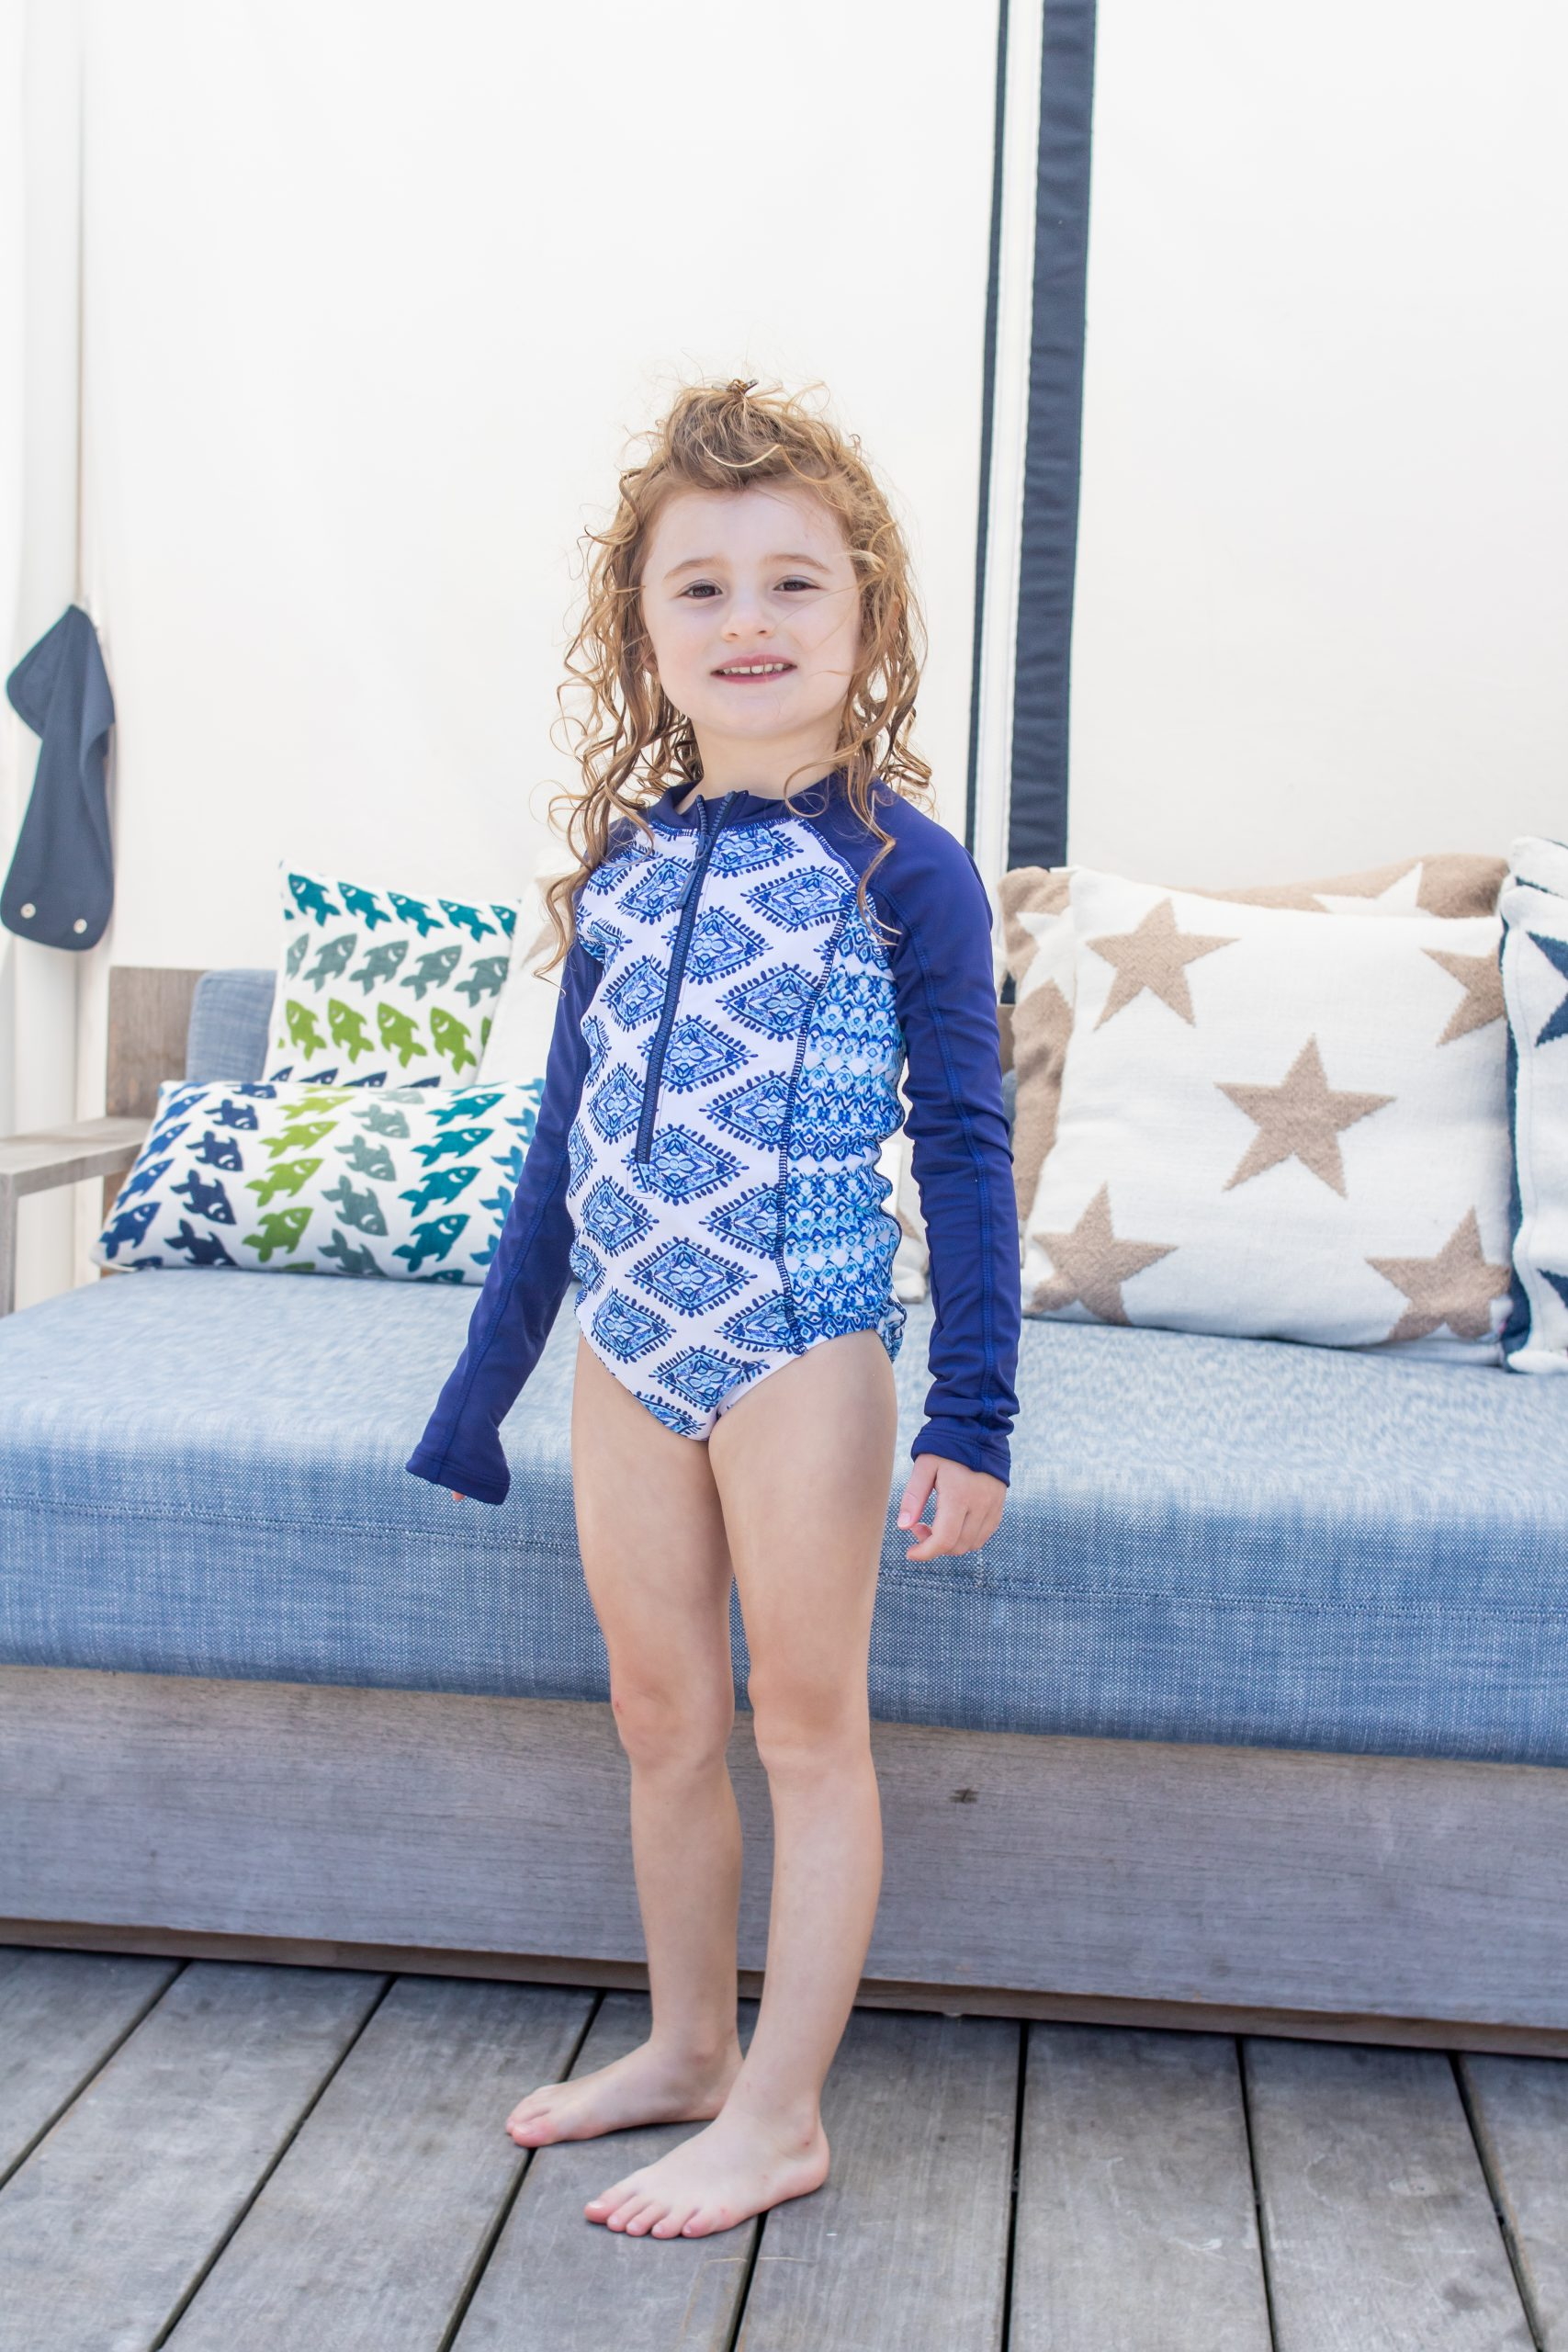 Little girls wearing sun safe Cabana life unisuit bathing suit at the Nantucket Hotel and Resort